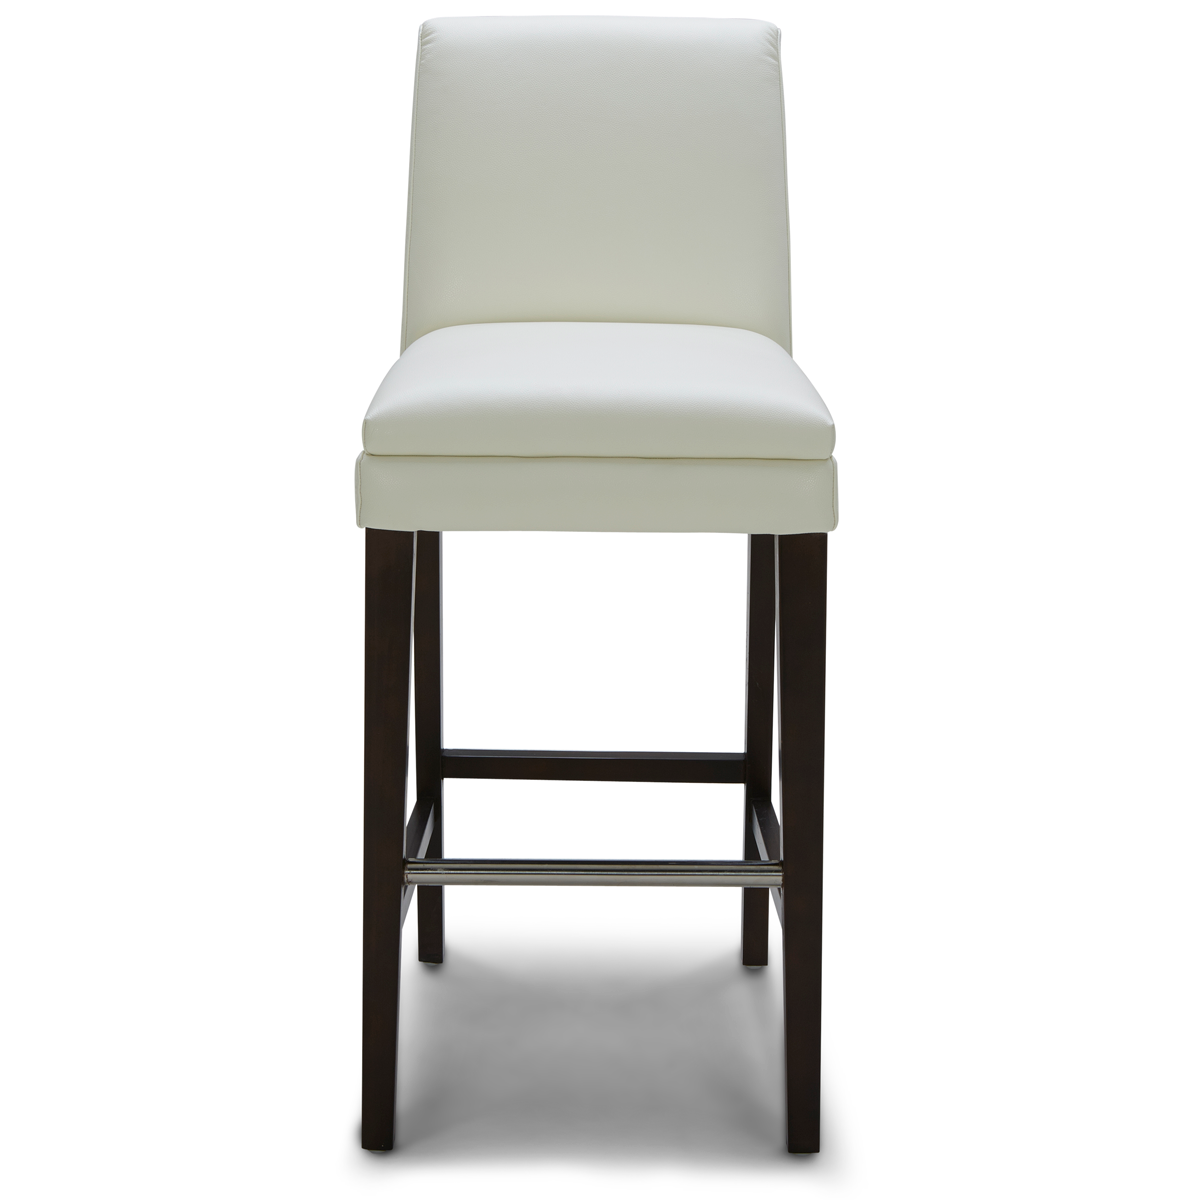 Contemporary Home Furniture De By Swaim High Point North